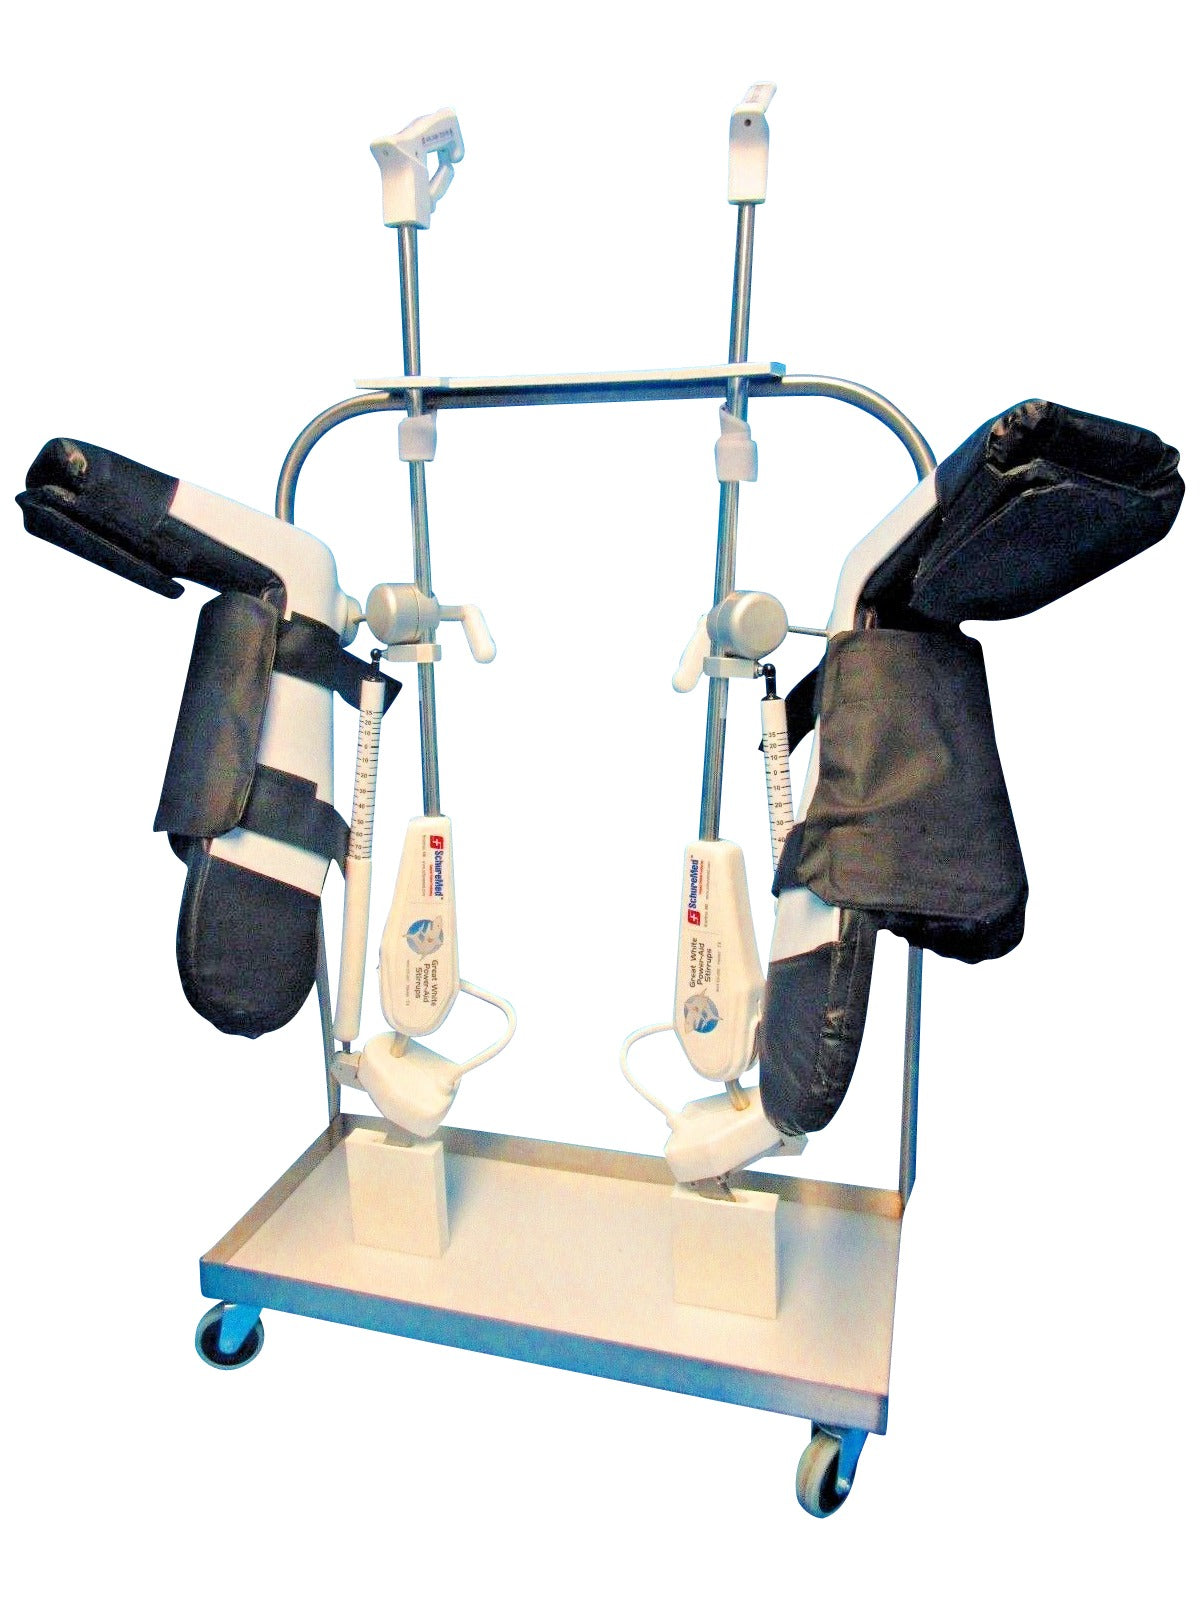 SchureMed 800-0007 Great White Power-Aid Stirrups